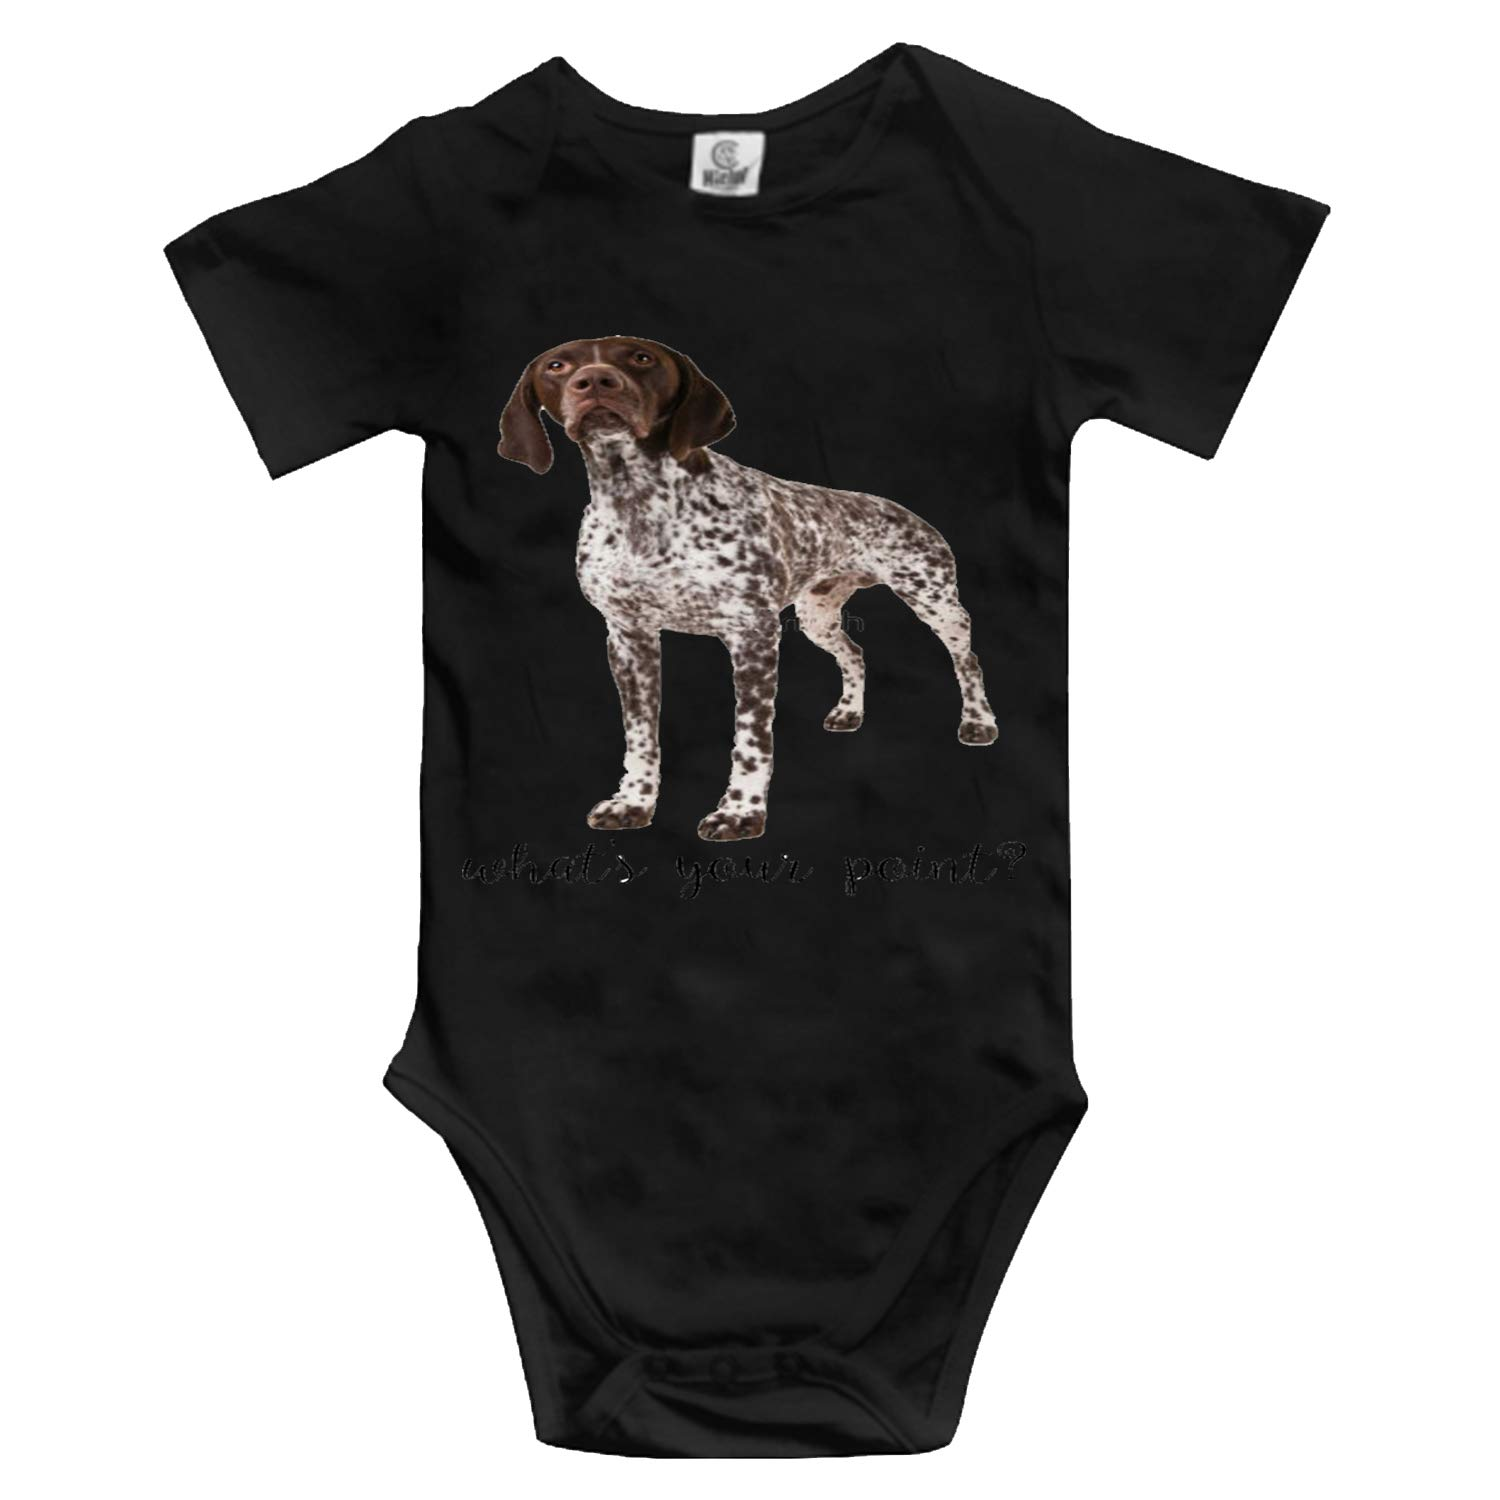 German Shorthaired Pointer Whats Your Point Infant Baby Boys Girls Clothing Shirts Short Sleeves Rompers Jumpsuit